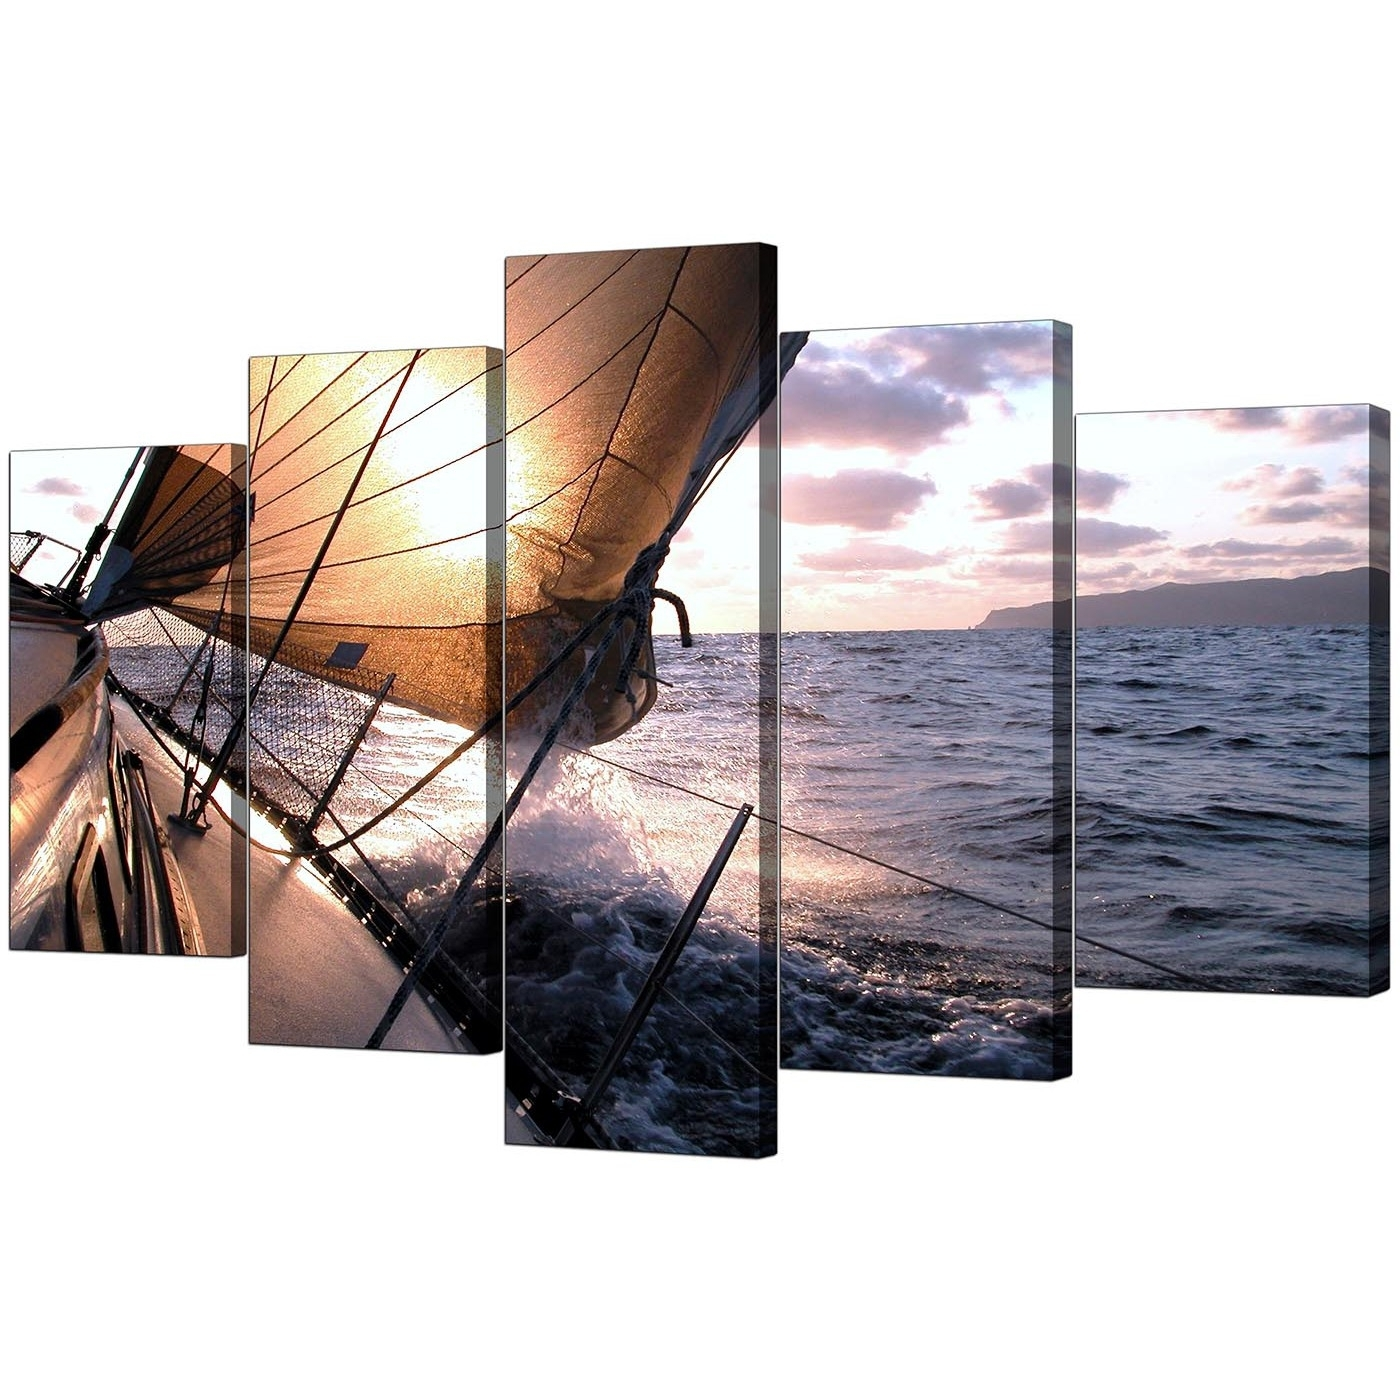 5 Piece Canvas Wall Art Within Favorite Boat Canvas Prints Uk For Your Living Room – 5 Piece (View 3 of 20)